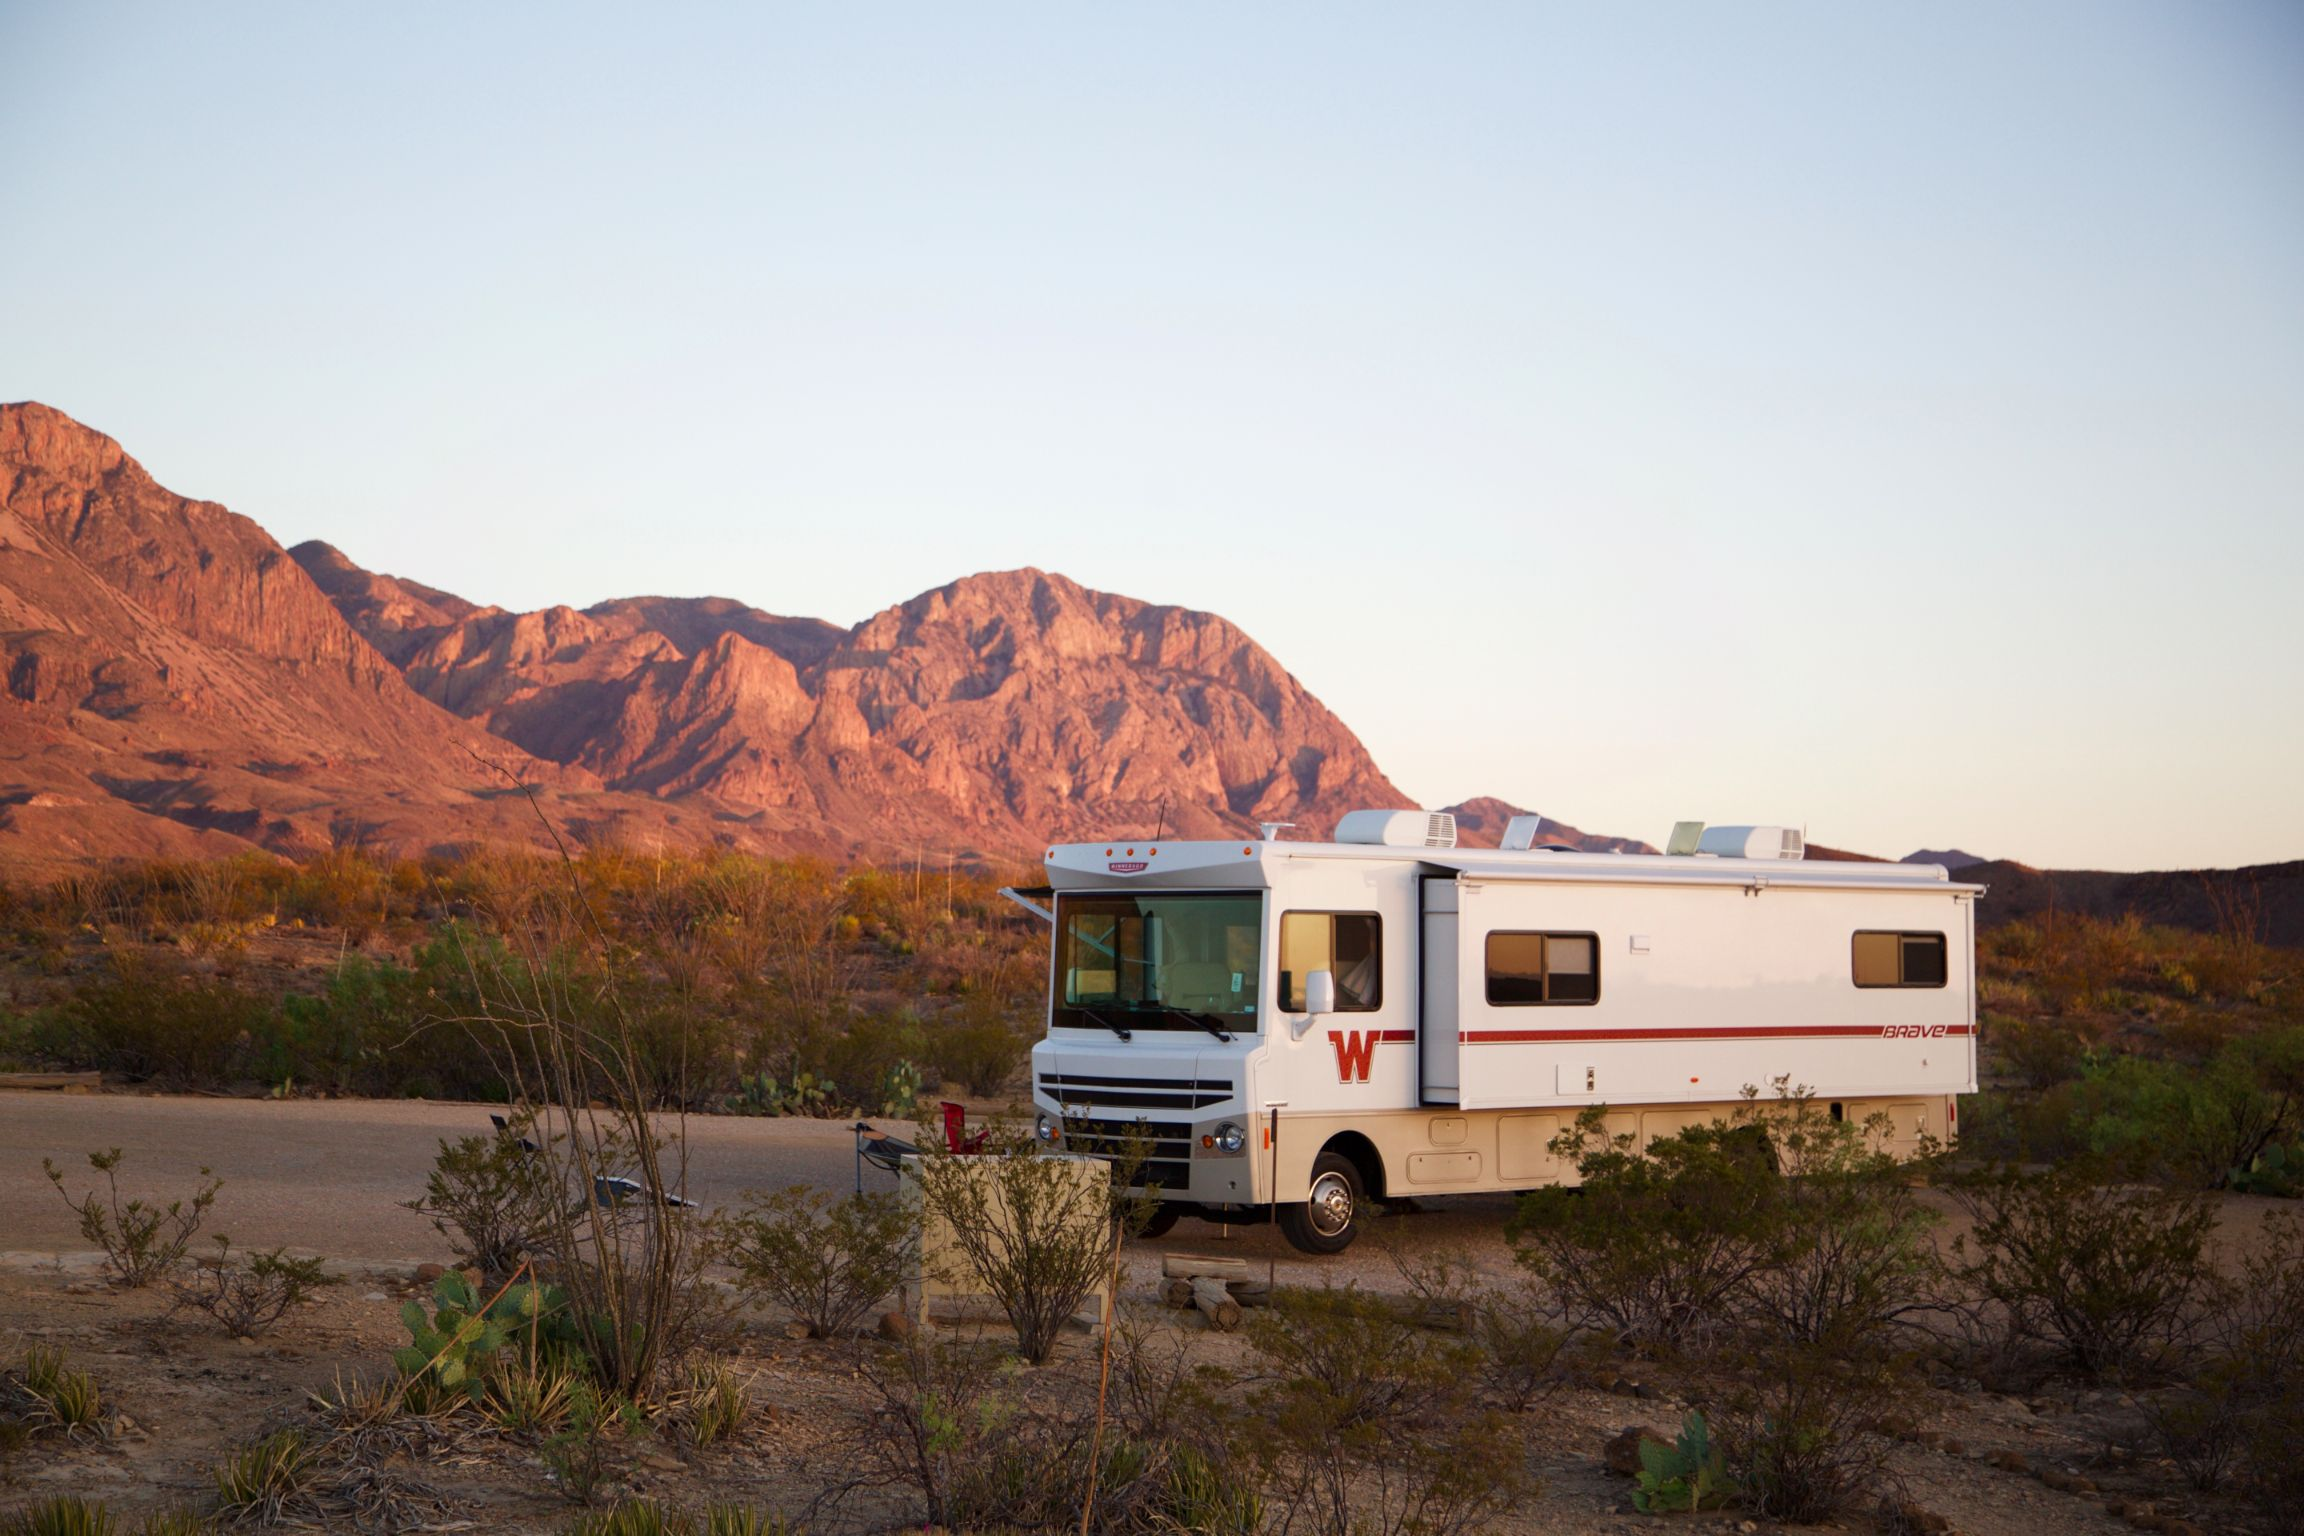 Winnebago Brave parked in desert landscape campsite with mountains in the background.